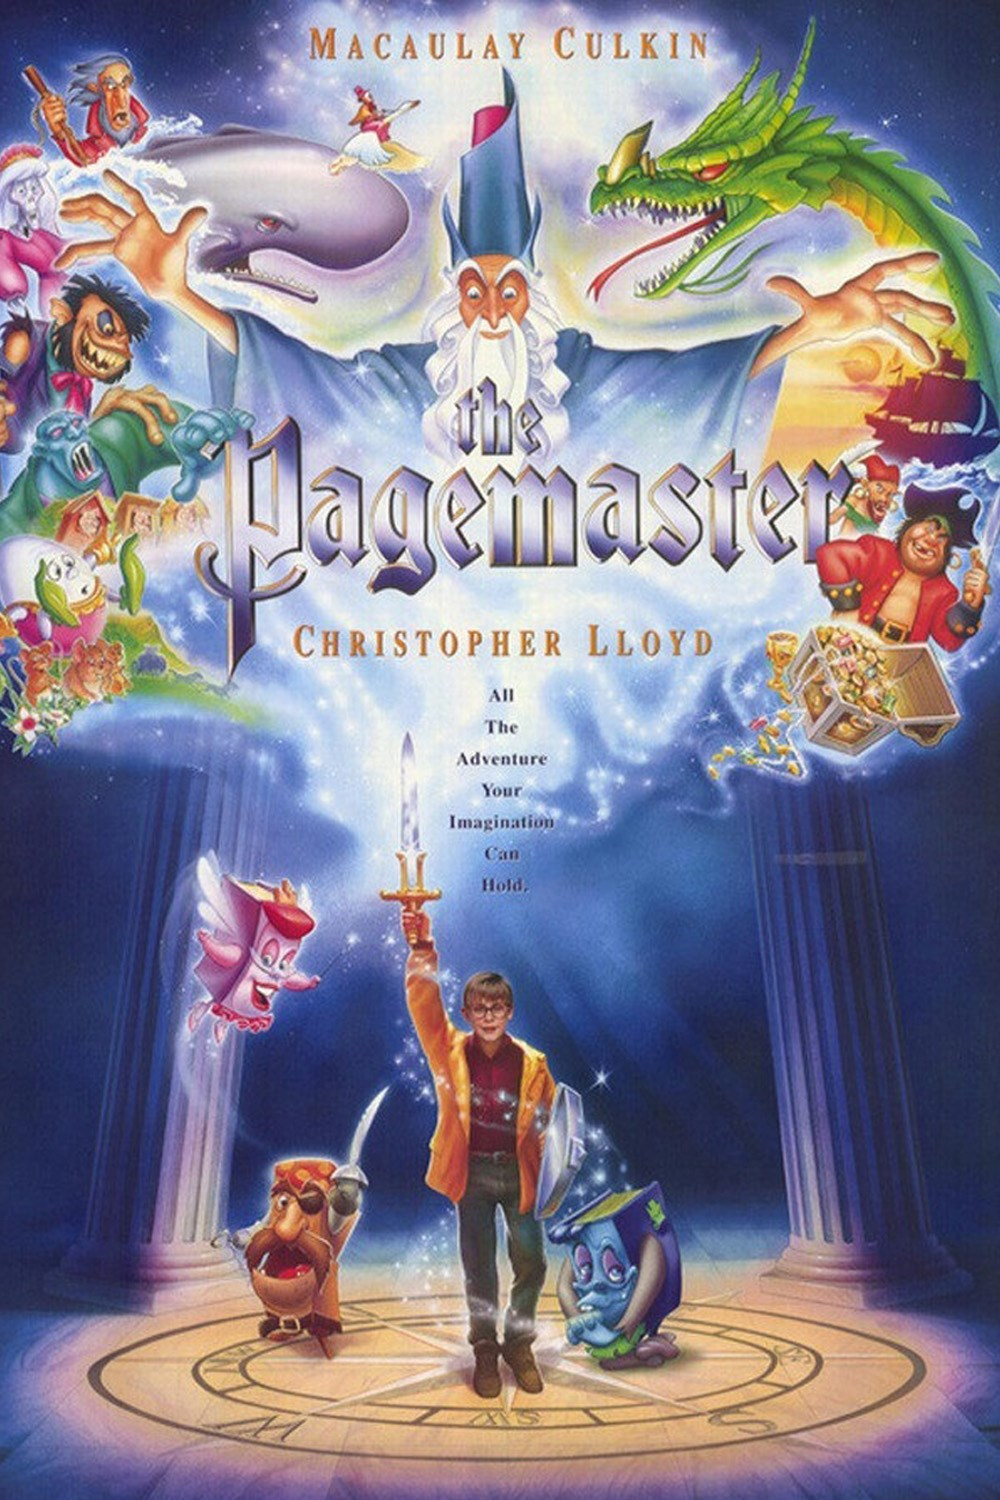 subscene the pagemaster english hearing impaired subtitle